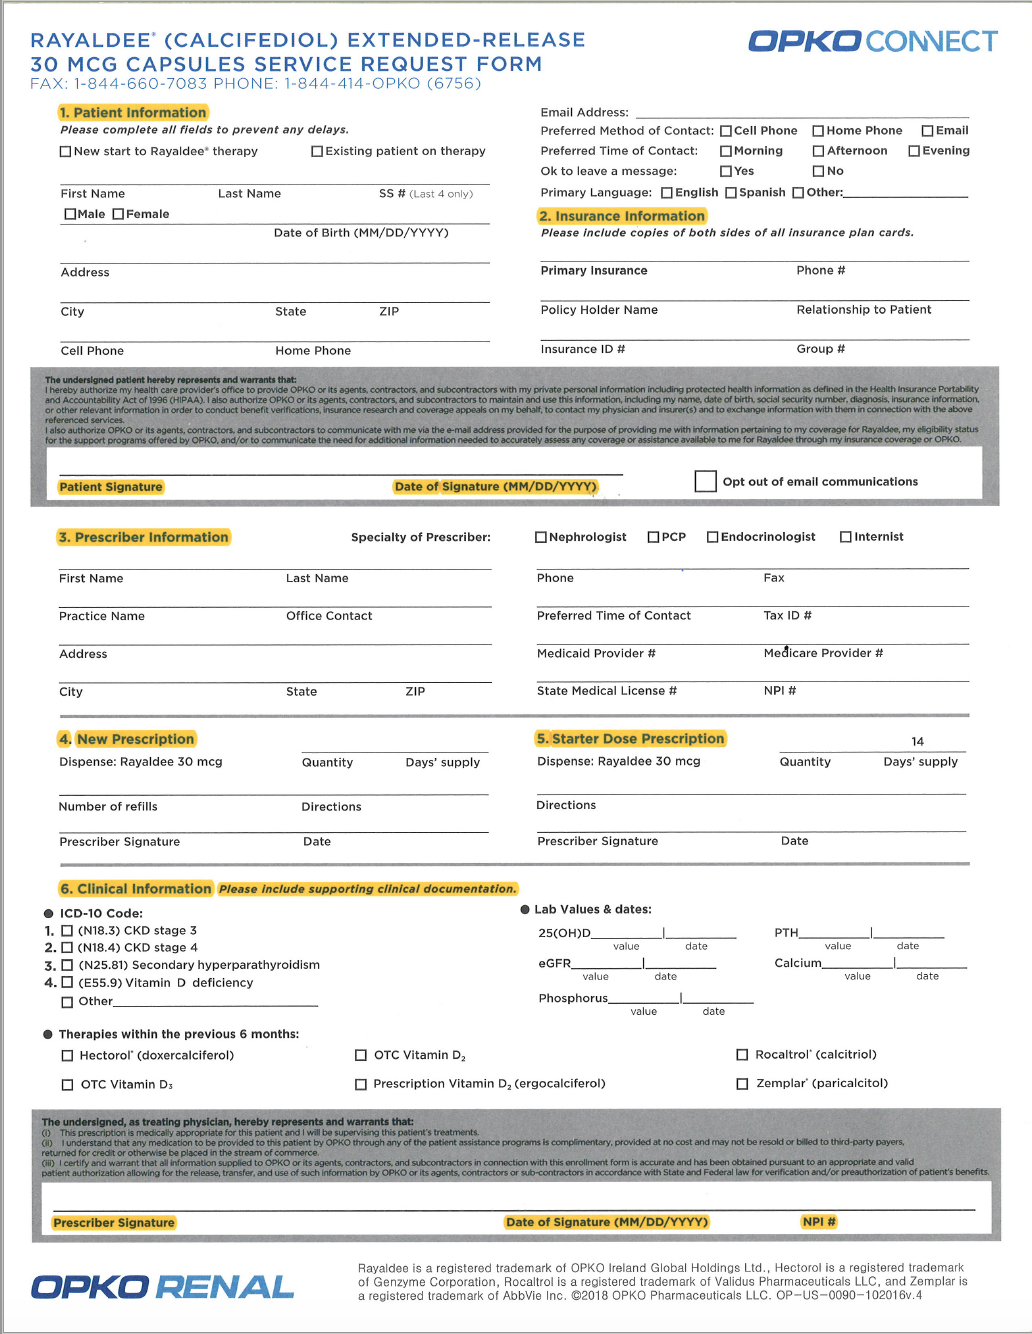 PDF image of form